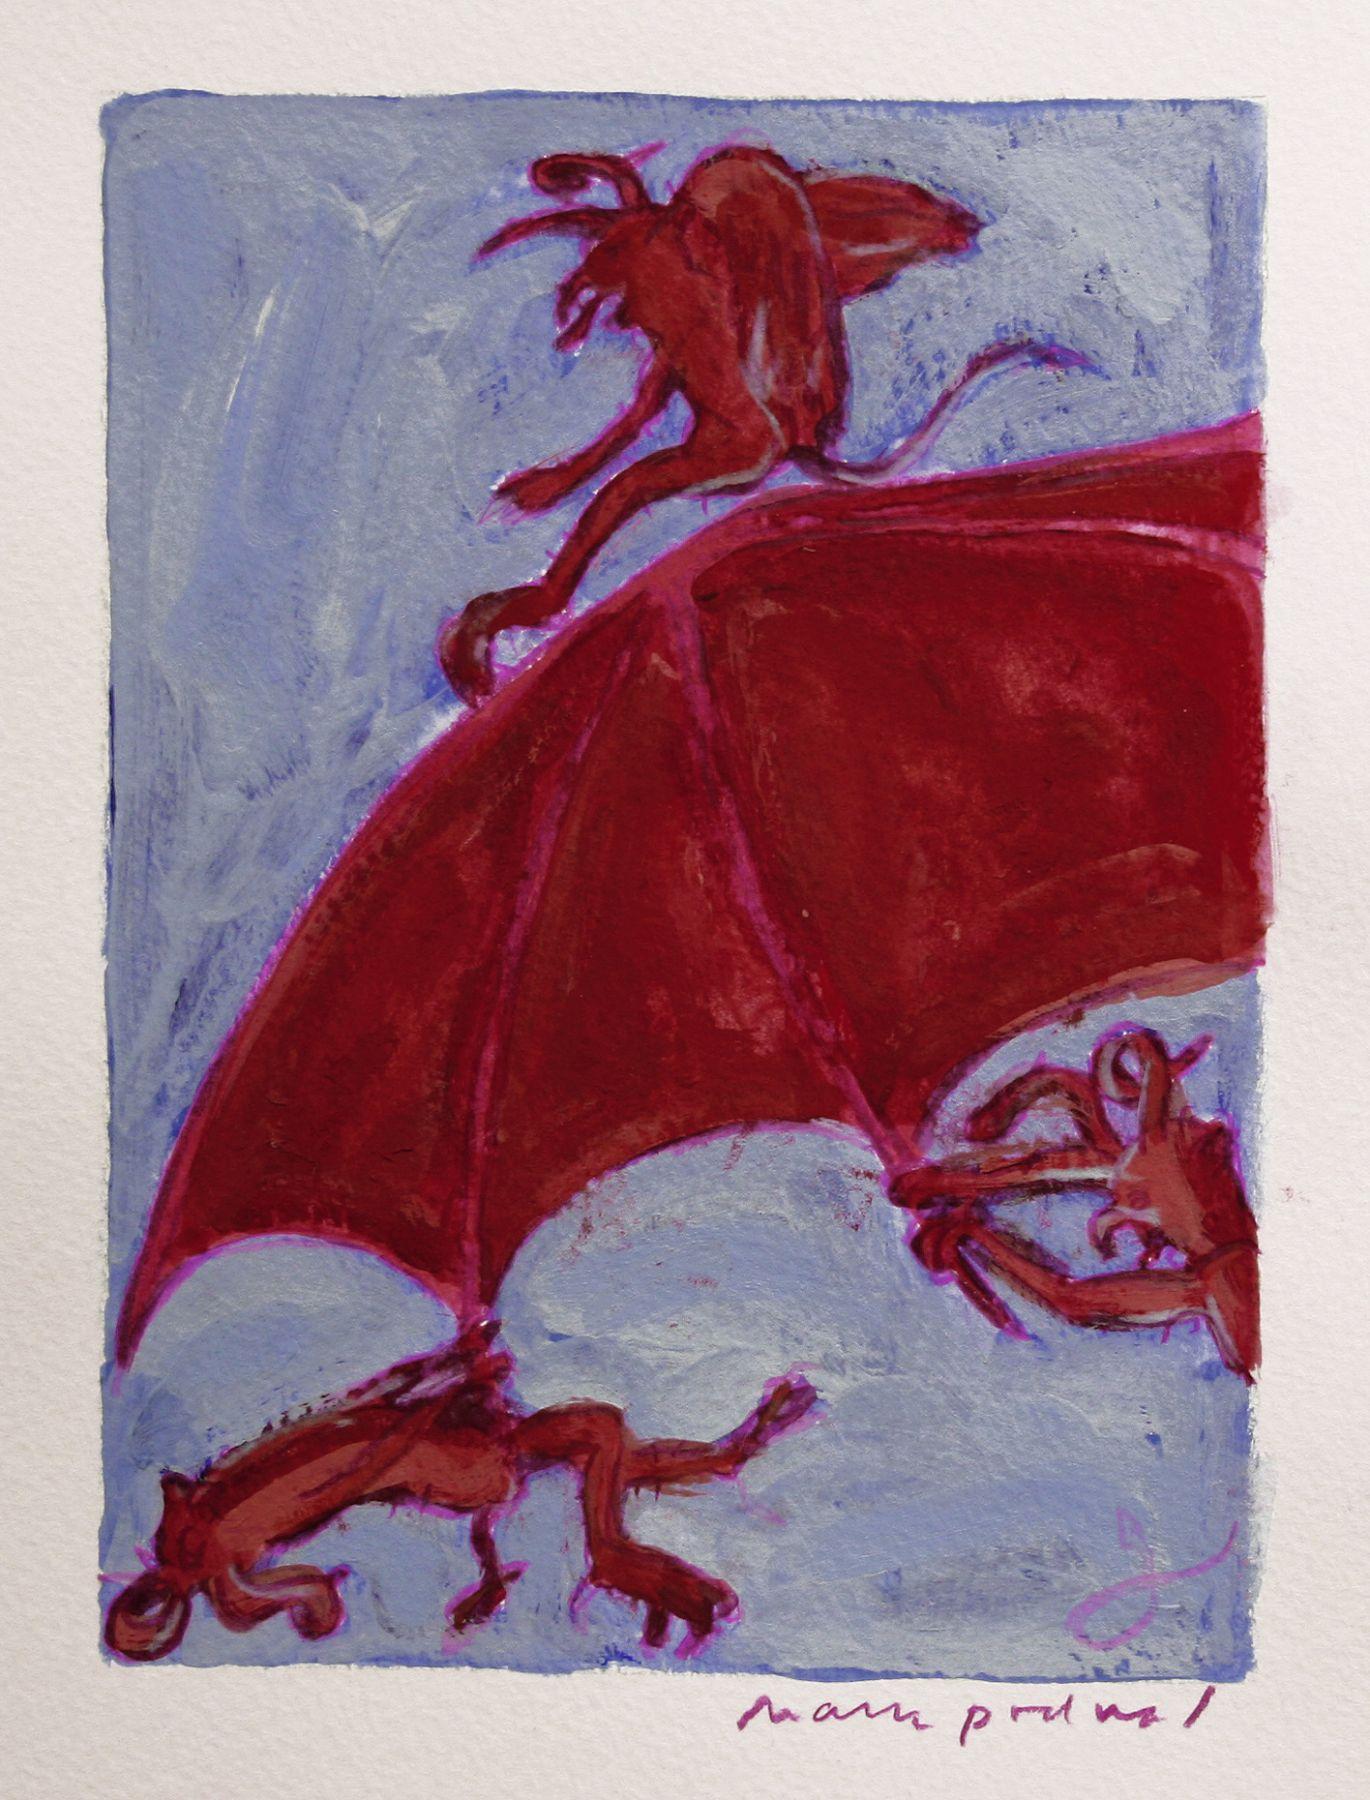 Mark Podwal, The Devil Proper, 2006, acrylic, gouache and colored pencil on paper, 7 1/5 x 5 1/2 inches